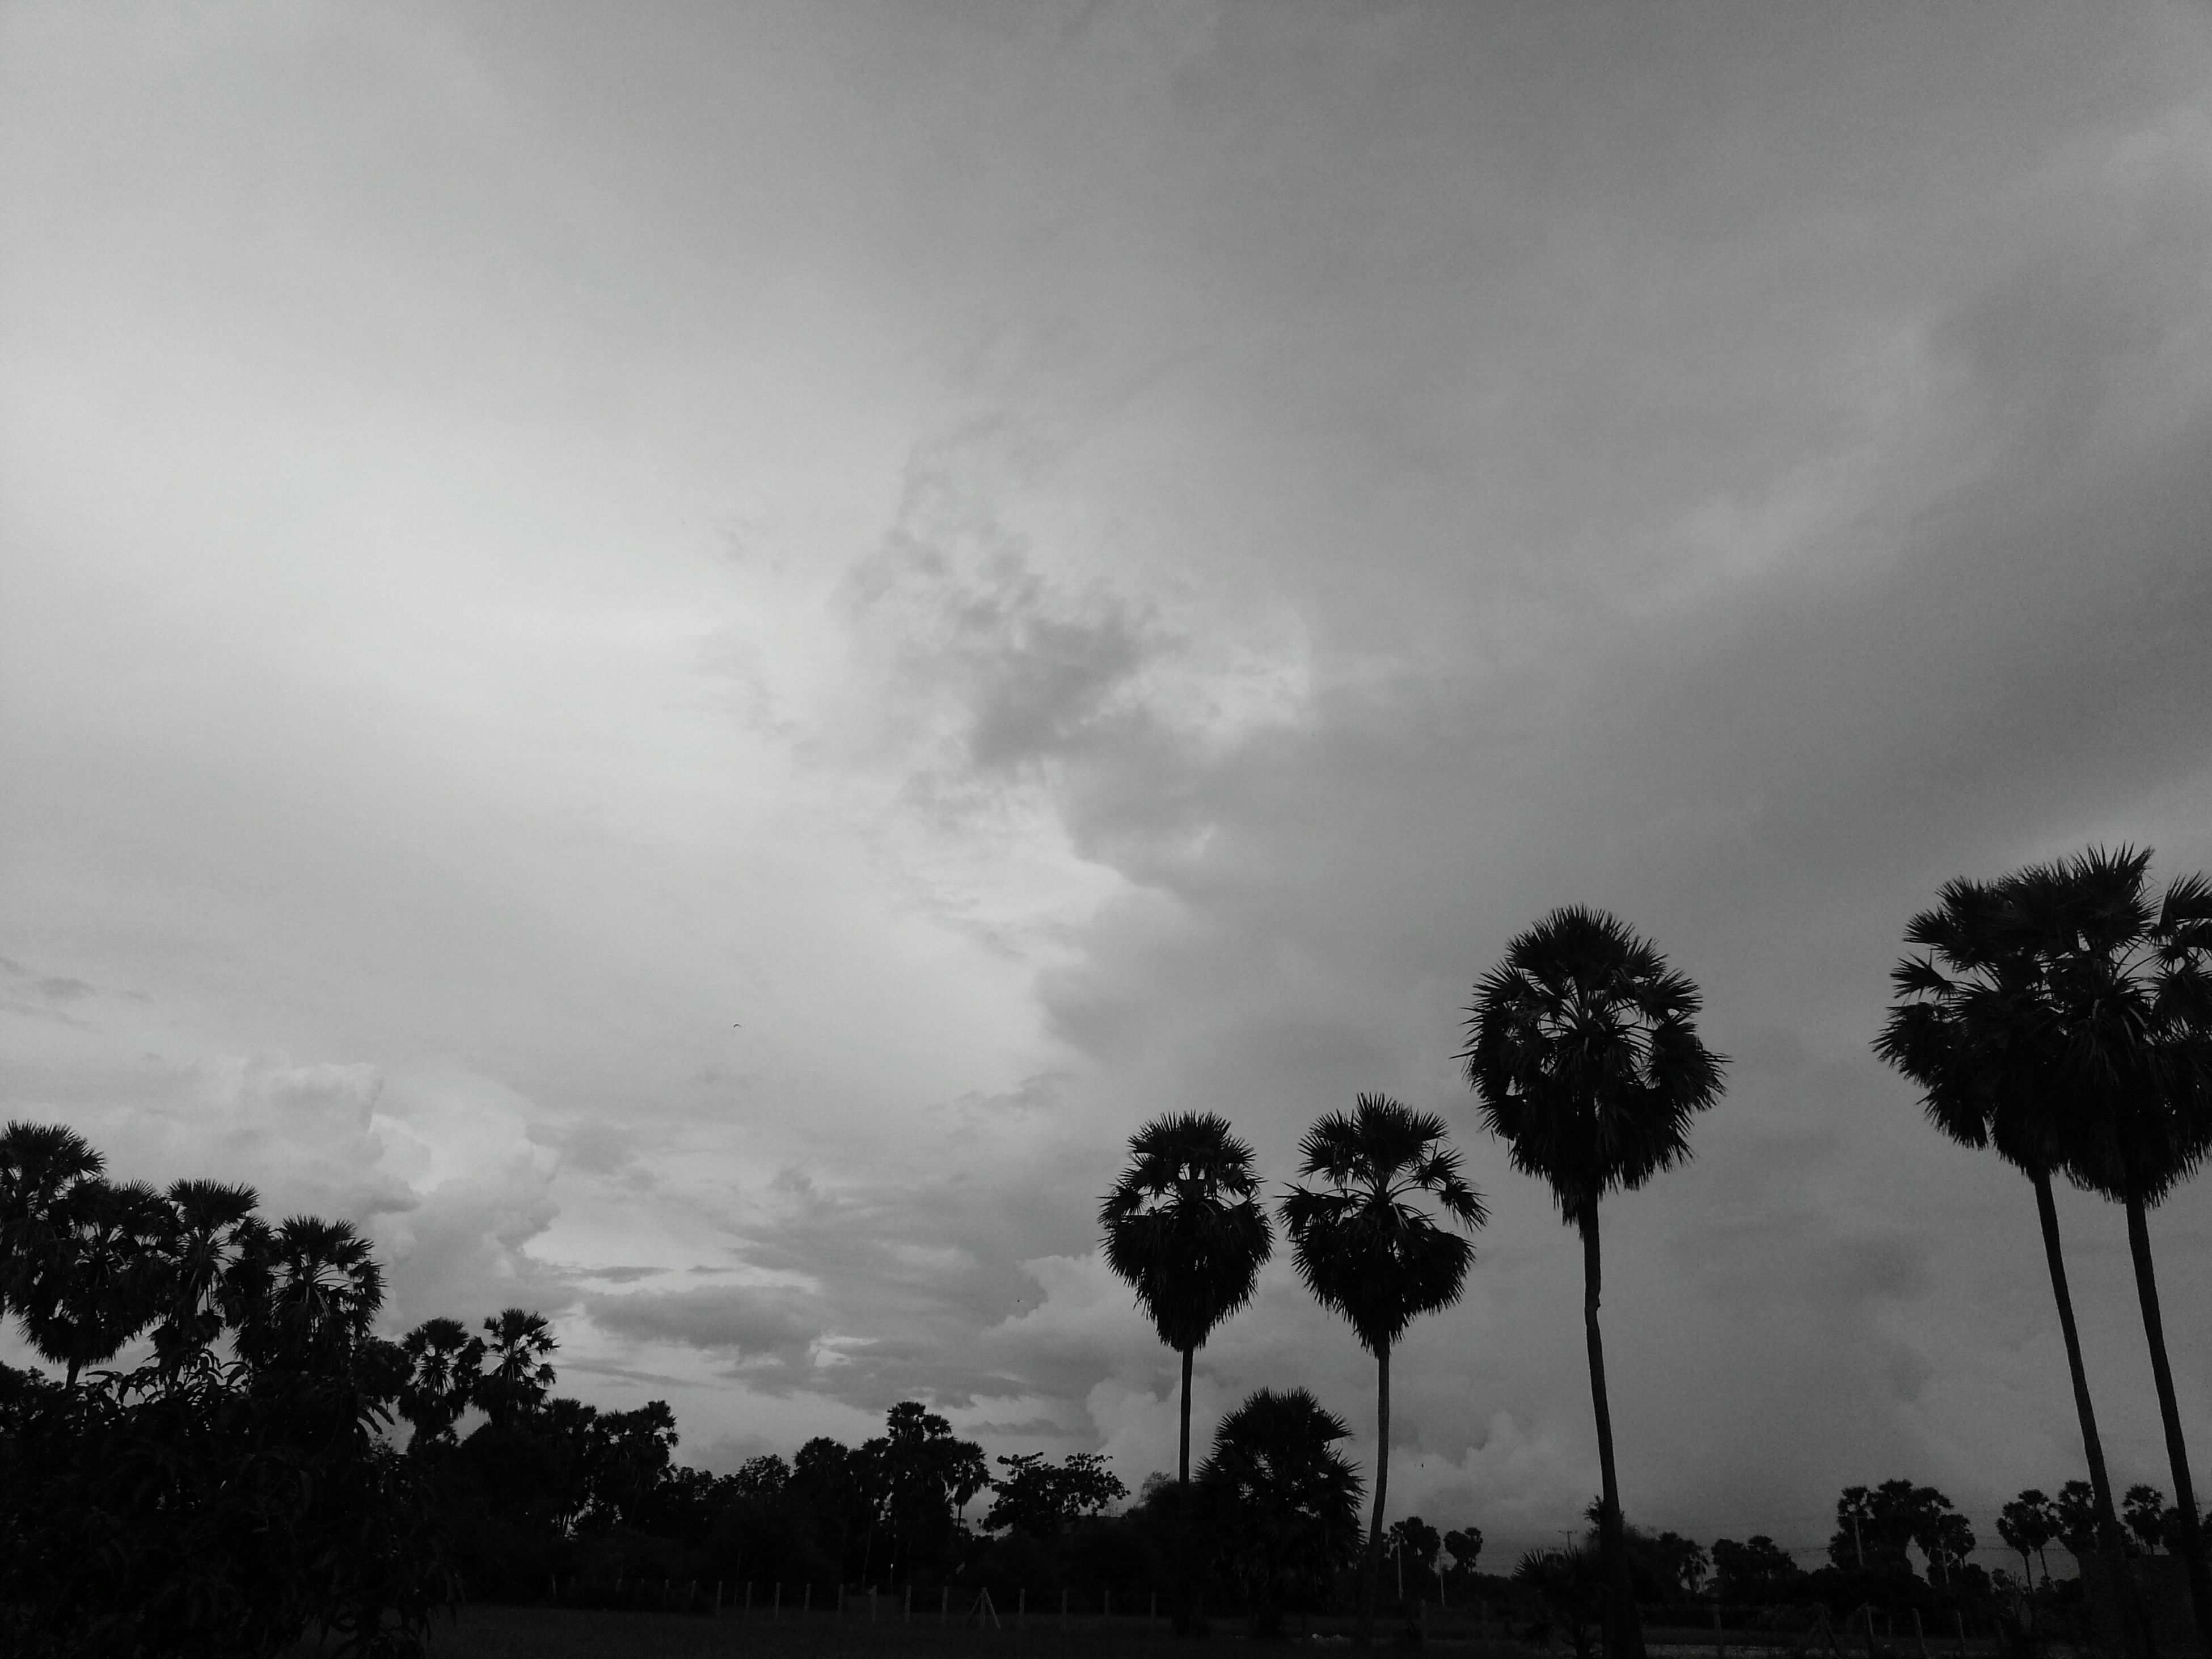 tree, sky, silhouette, low angle view, tranquility, cloud - sky, growth, beauty in nature, tranquil scene, nature, scenics, palm tree, cloudy, cloud, branch, outdoors, dusk, tree trunk, no people, idyllic